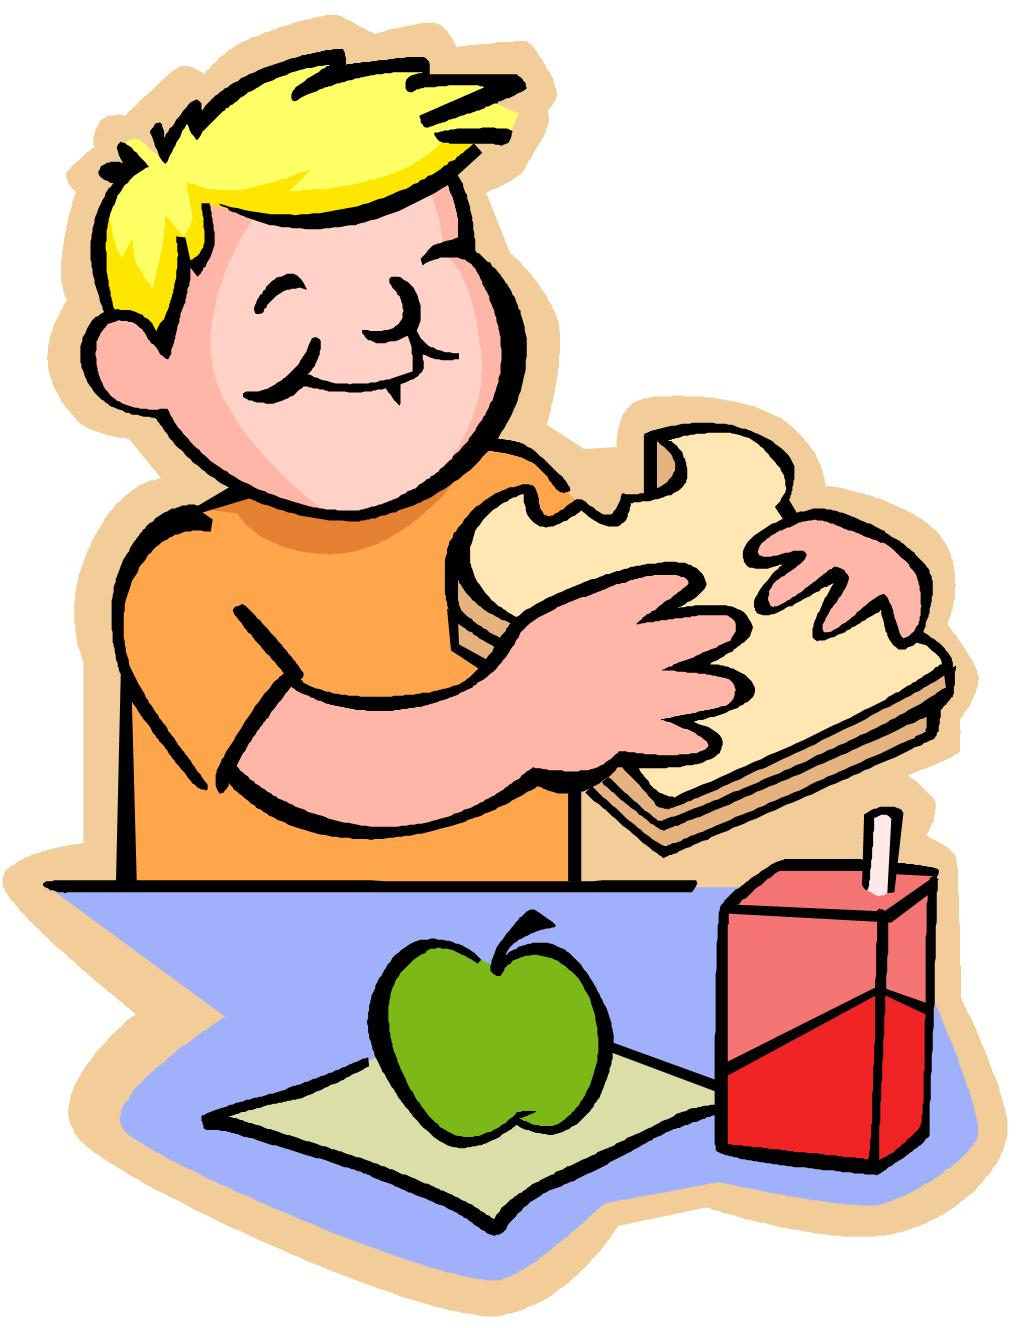 Eating breakfast clipart free clipart im-Eating breakfast clipart free clipart image 2-2